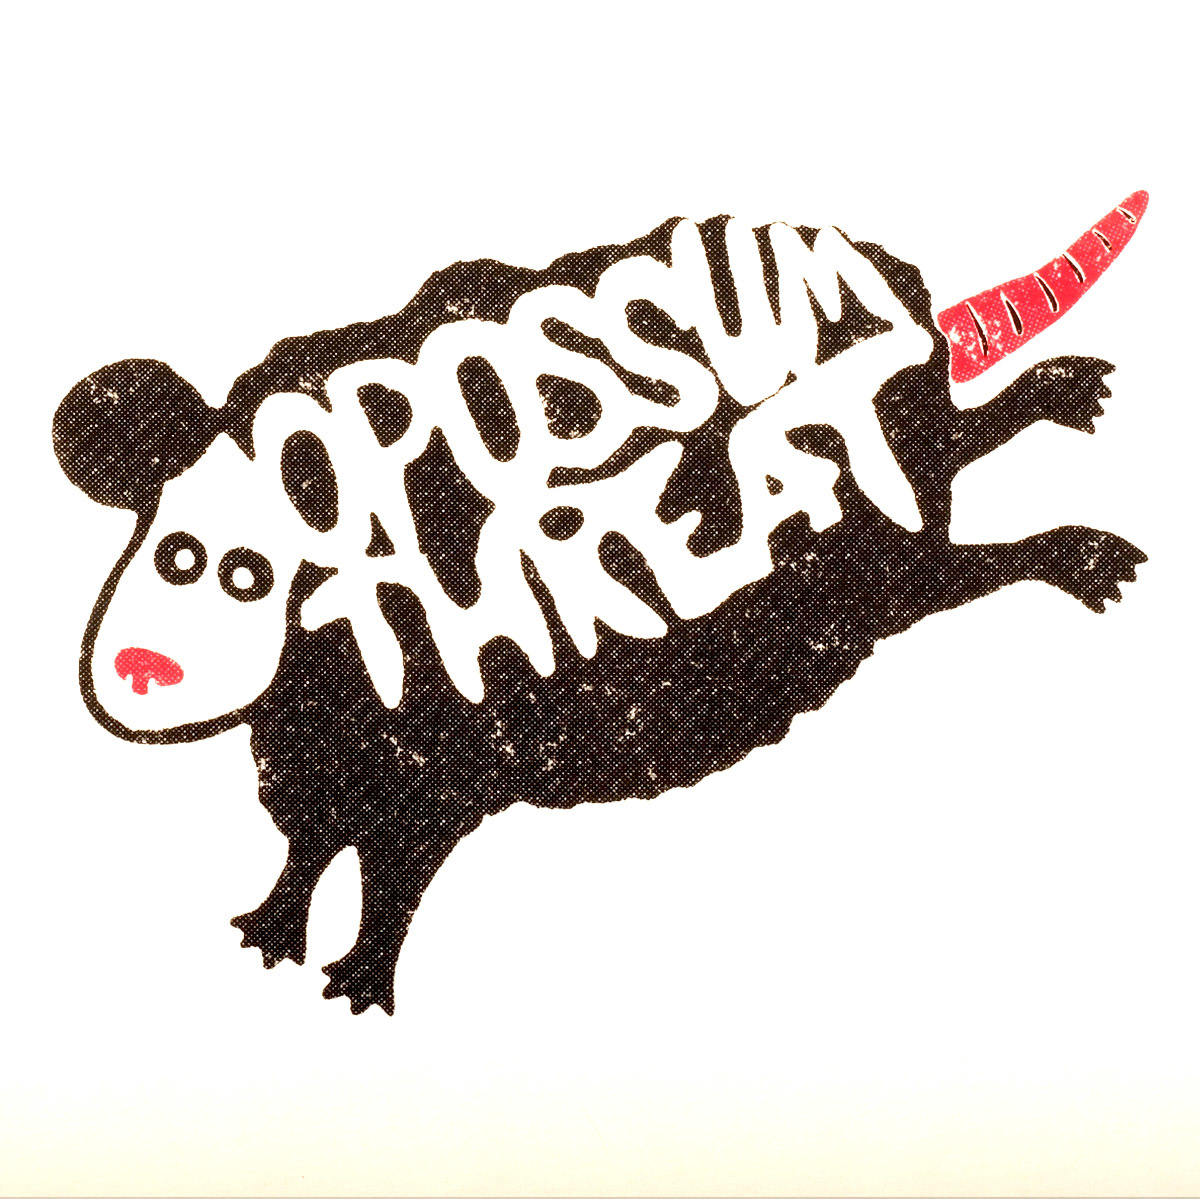 Opossum threat / футболка